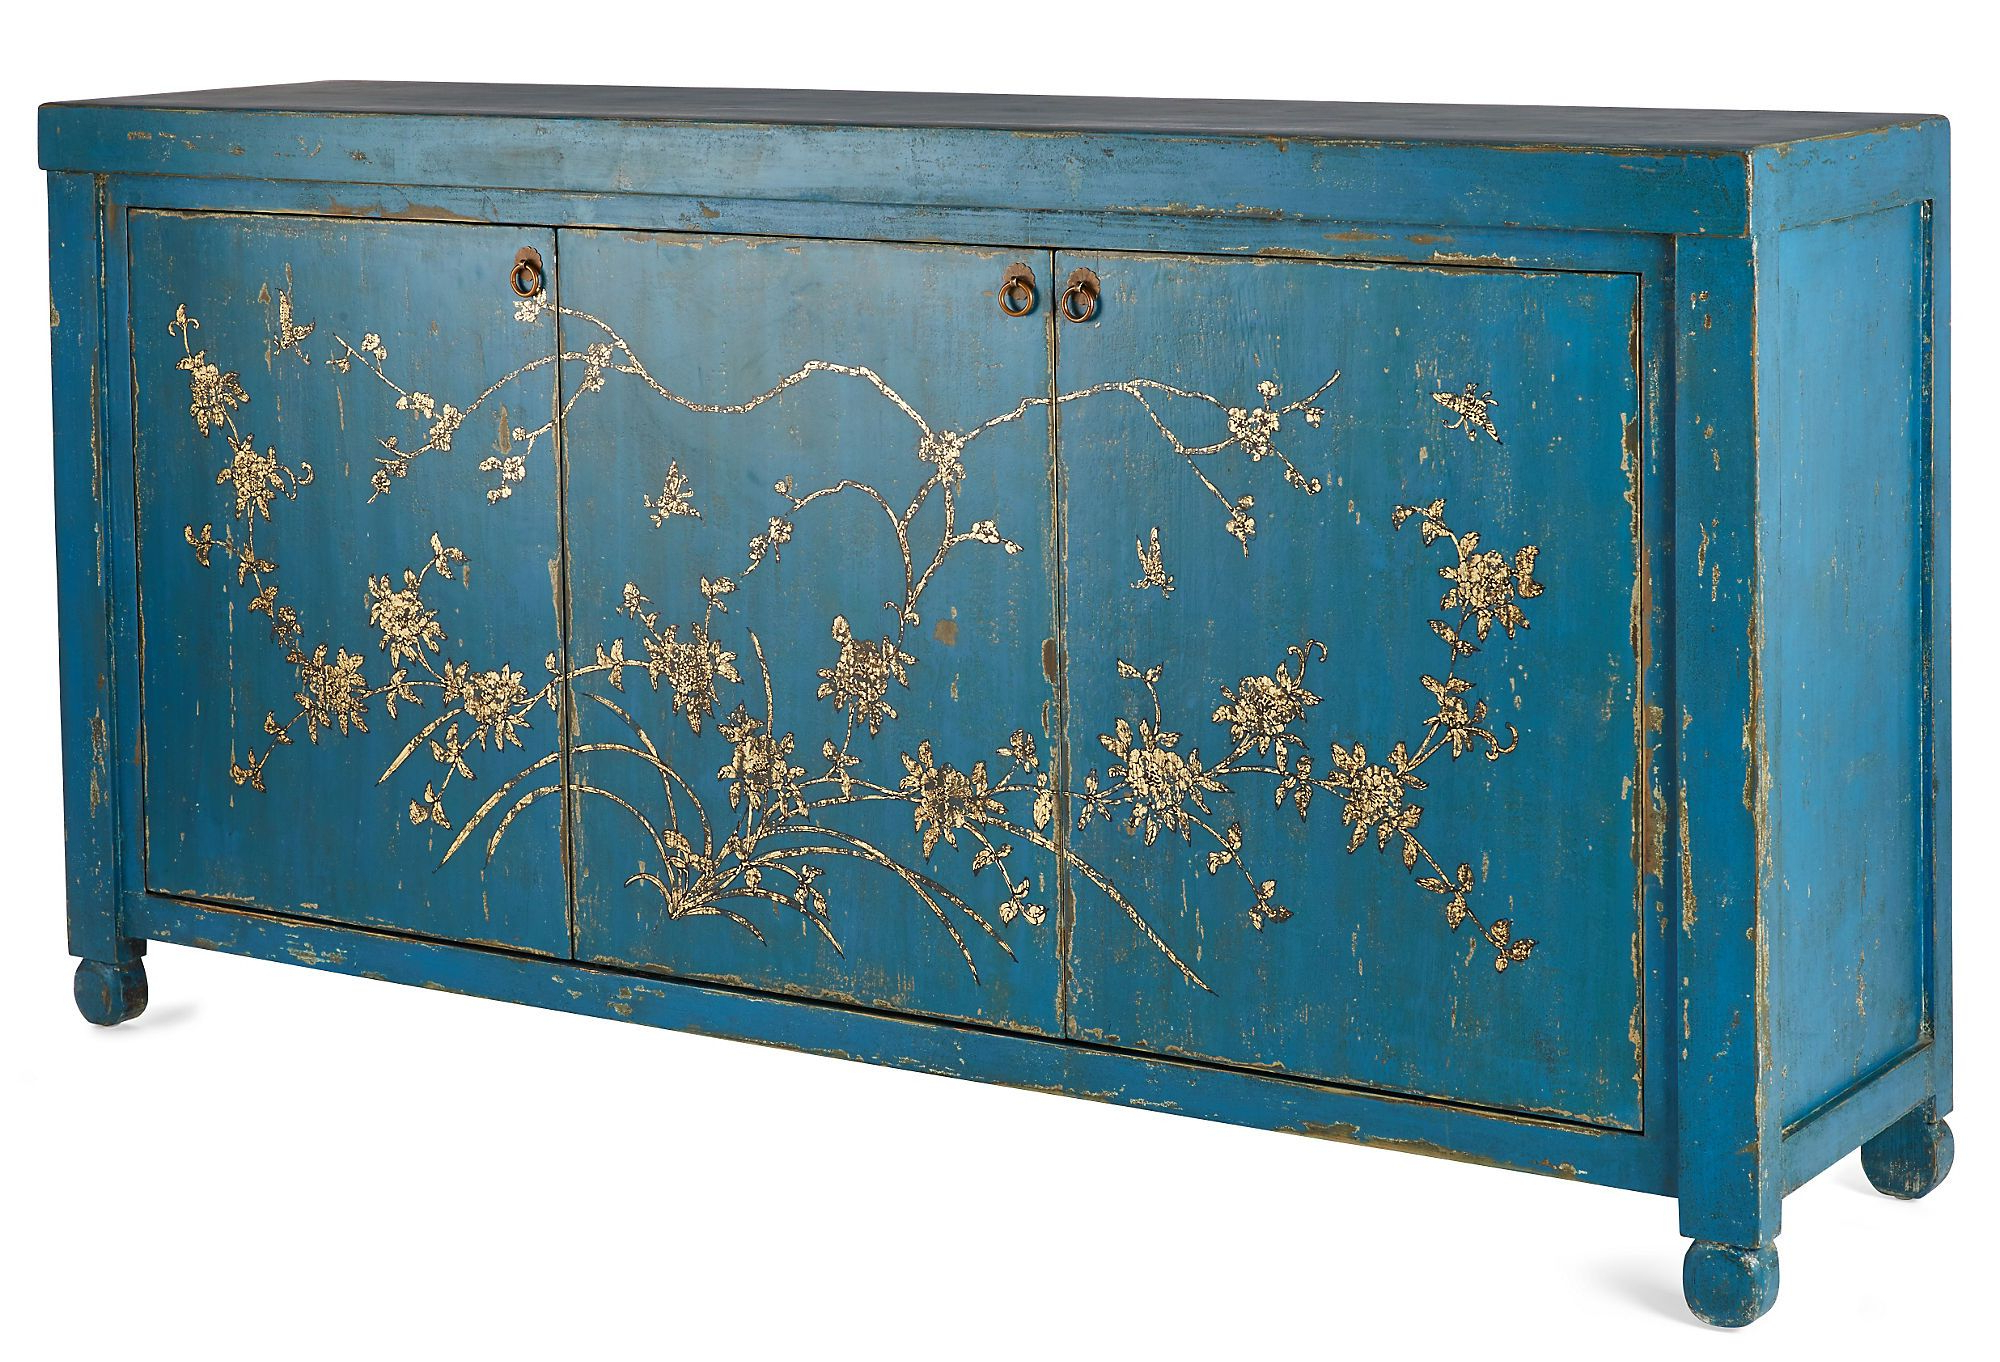 2018 Rustic Black & Zebra Pine Sideboards With Jago Sideboard, Bluemadera Home – Chinoiserie Painted Console (Gallery 5 of 20)